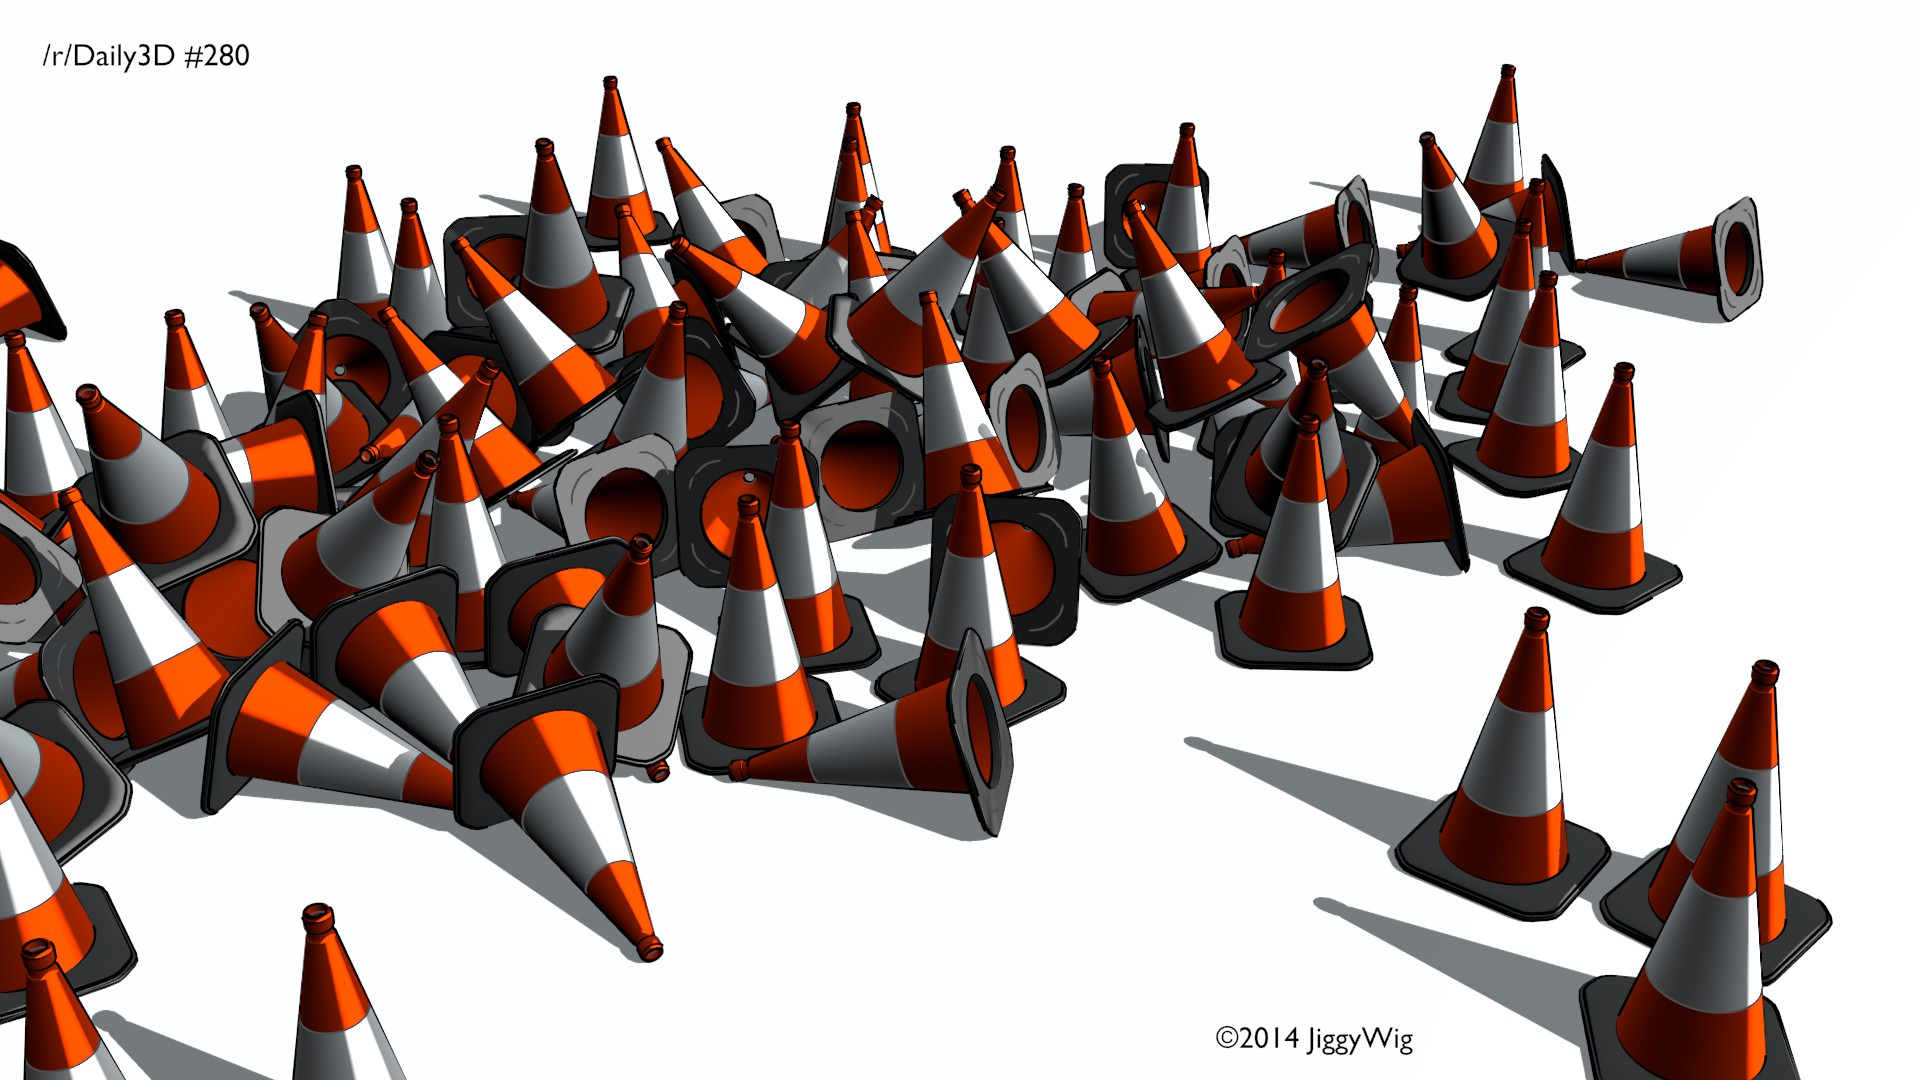 #280 - Toon rendered Traffic Cones.